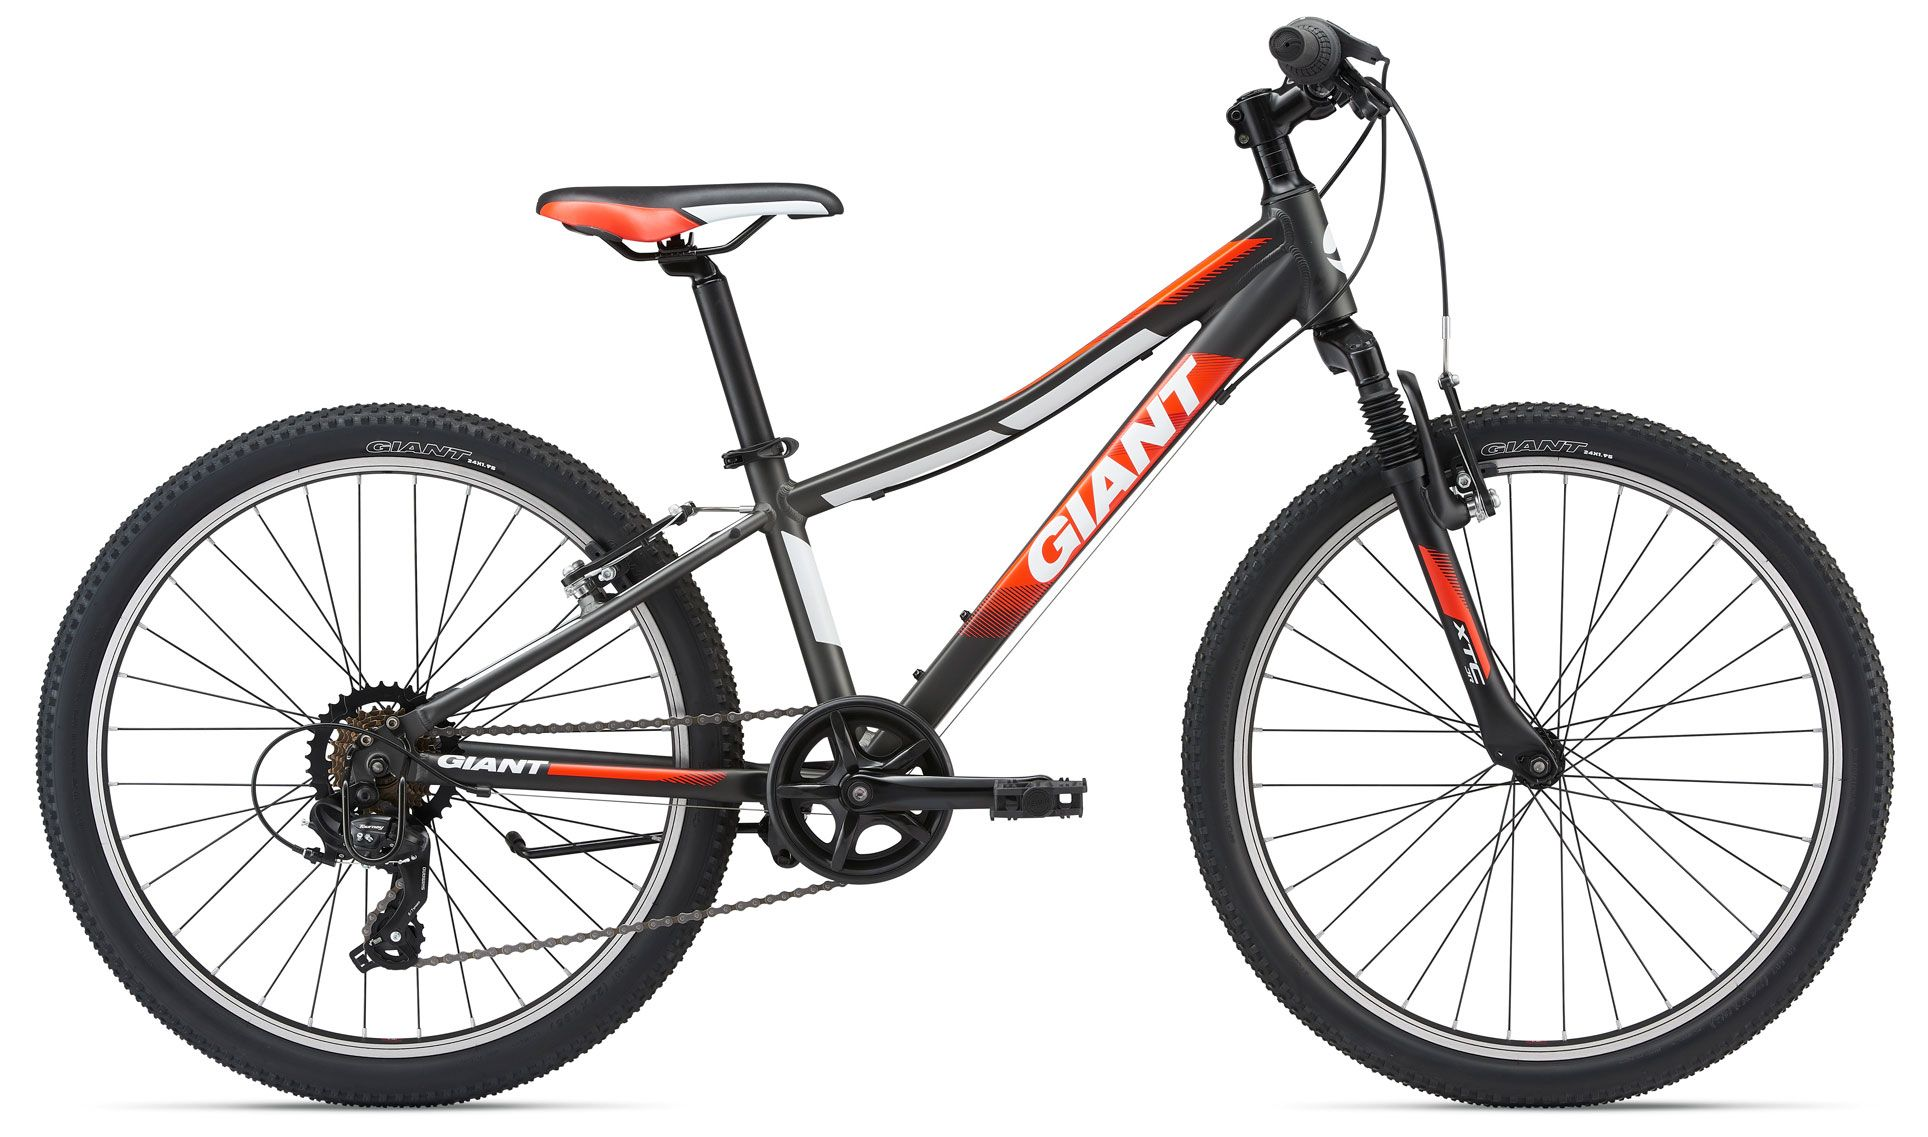 Велосипед Giant XtC Jr 2 24 2018 велосипед giant xtc composite 1 2013